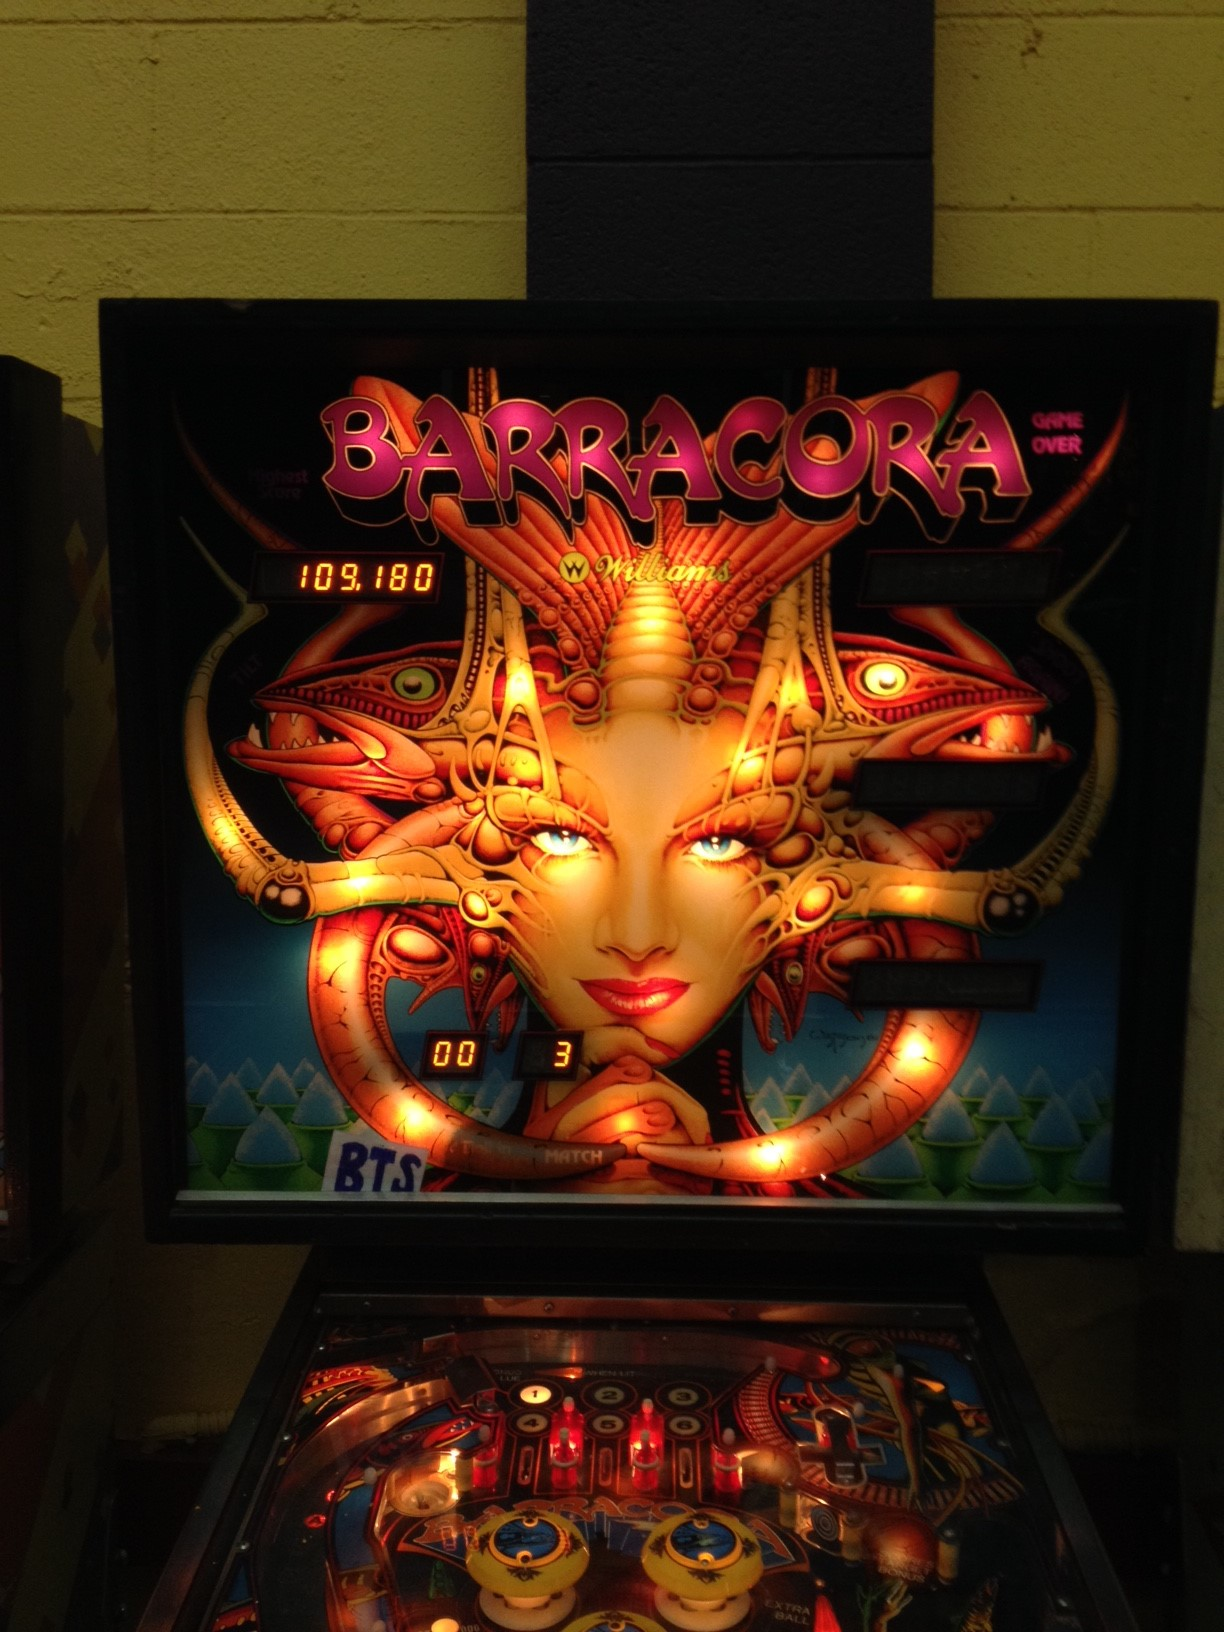 bensweeneyonbass: Barracora (Pinball: 3 Balls) 109,180 points on 2016-03-21 09:03:29